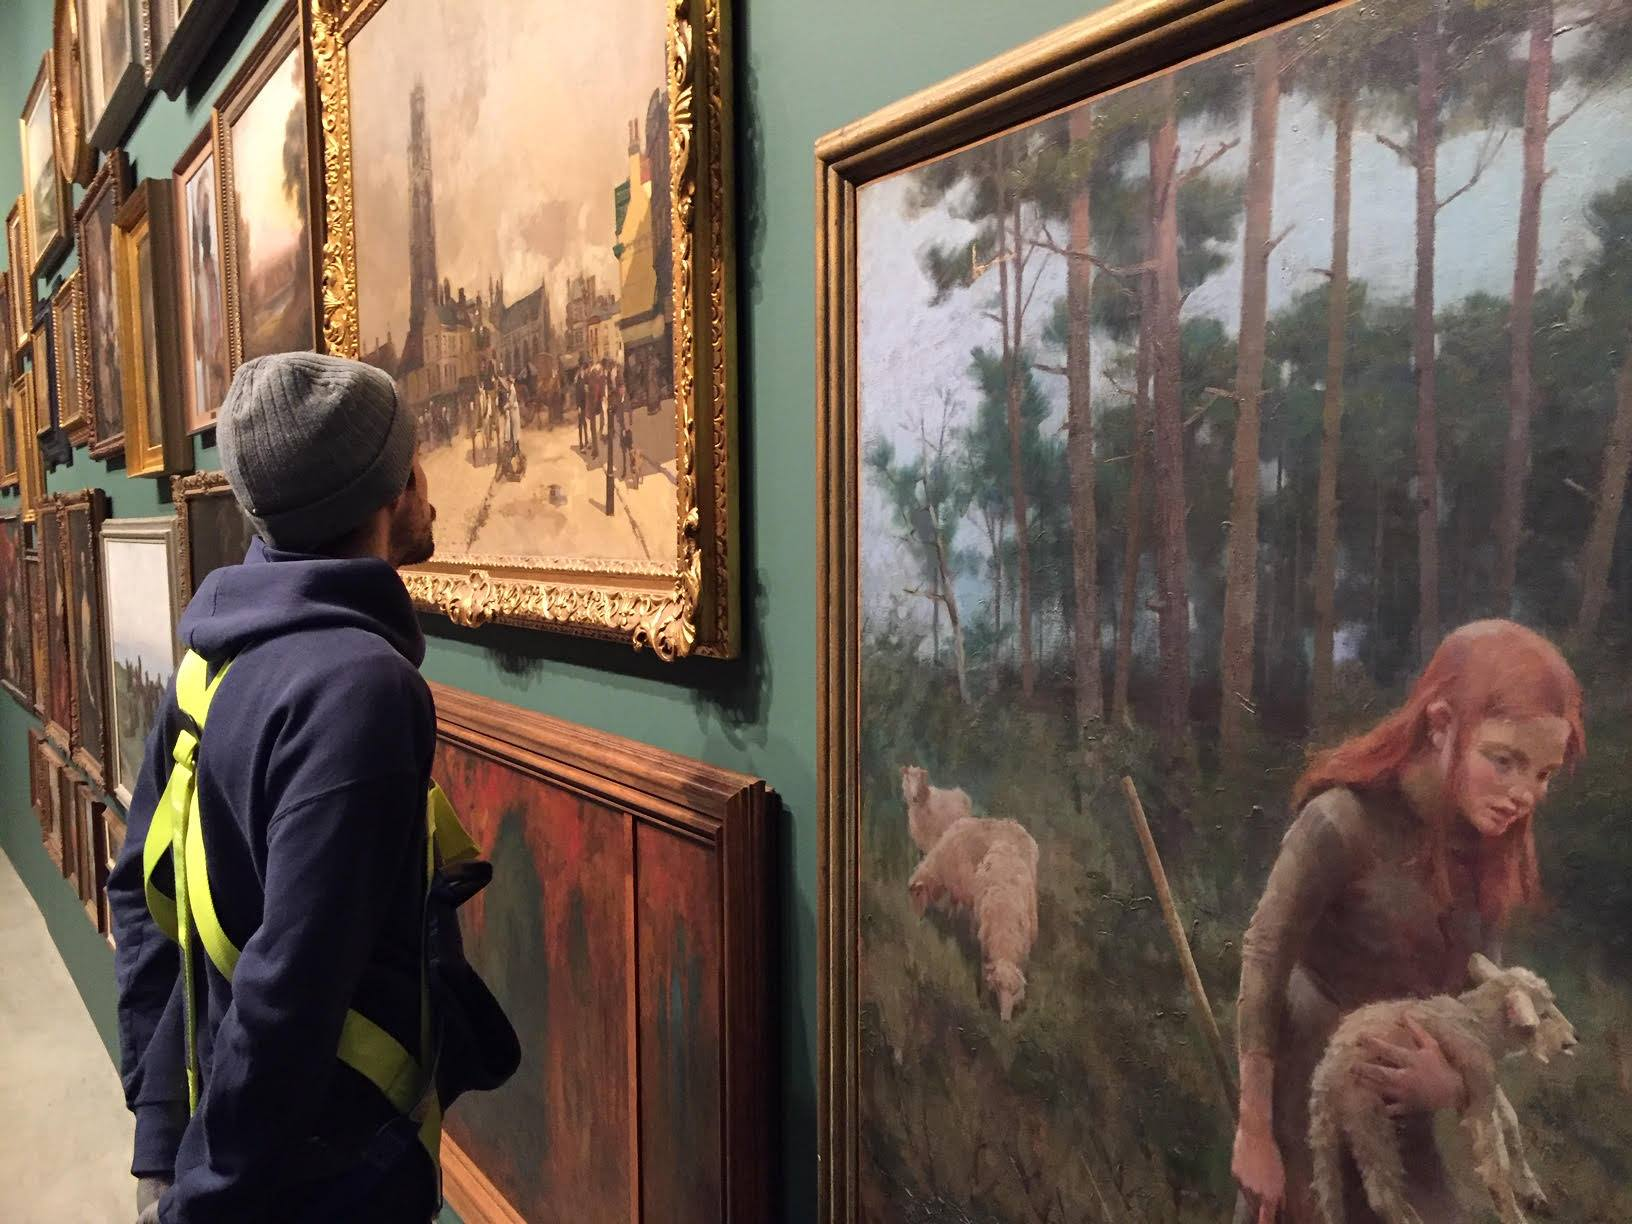 Get up close with the collection at the Art Gallery of Windsor.